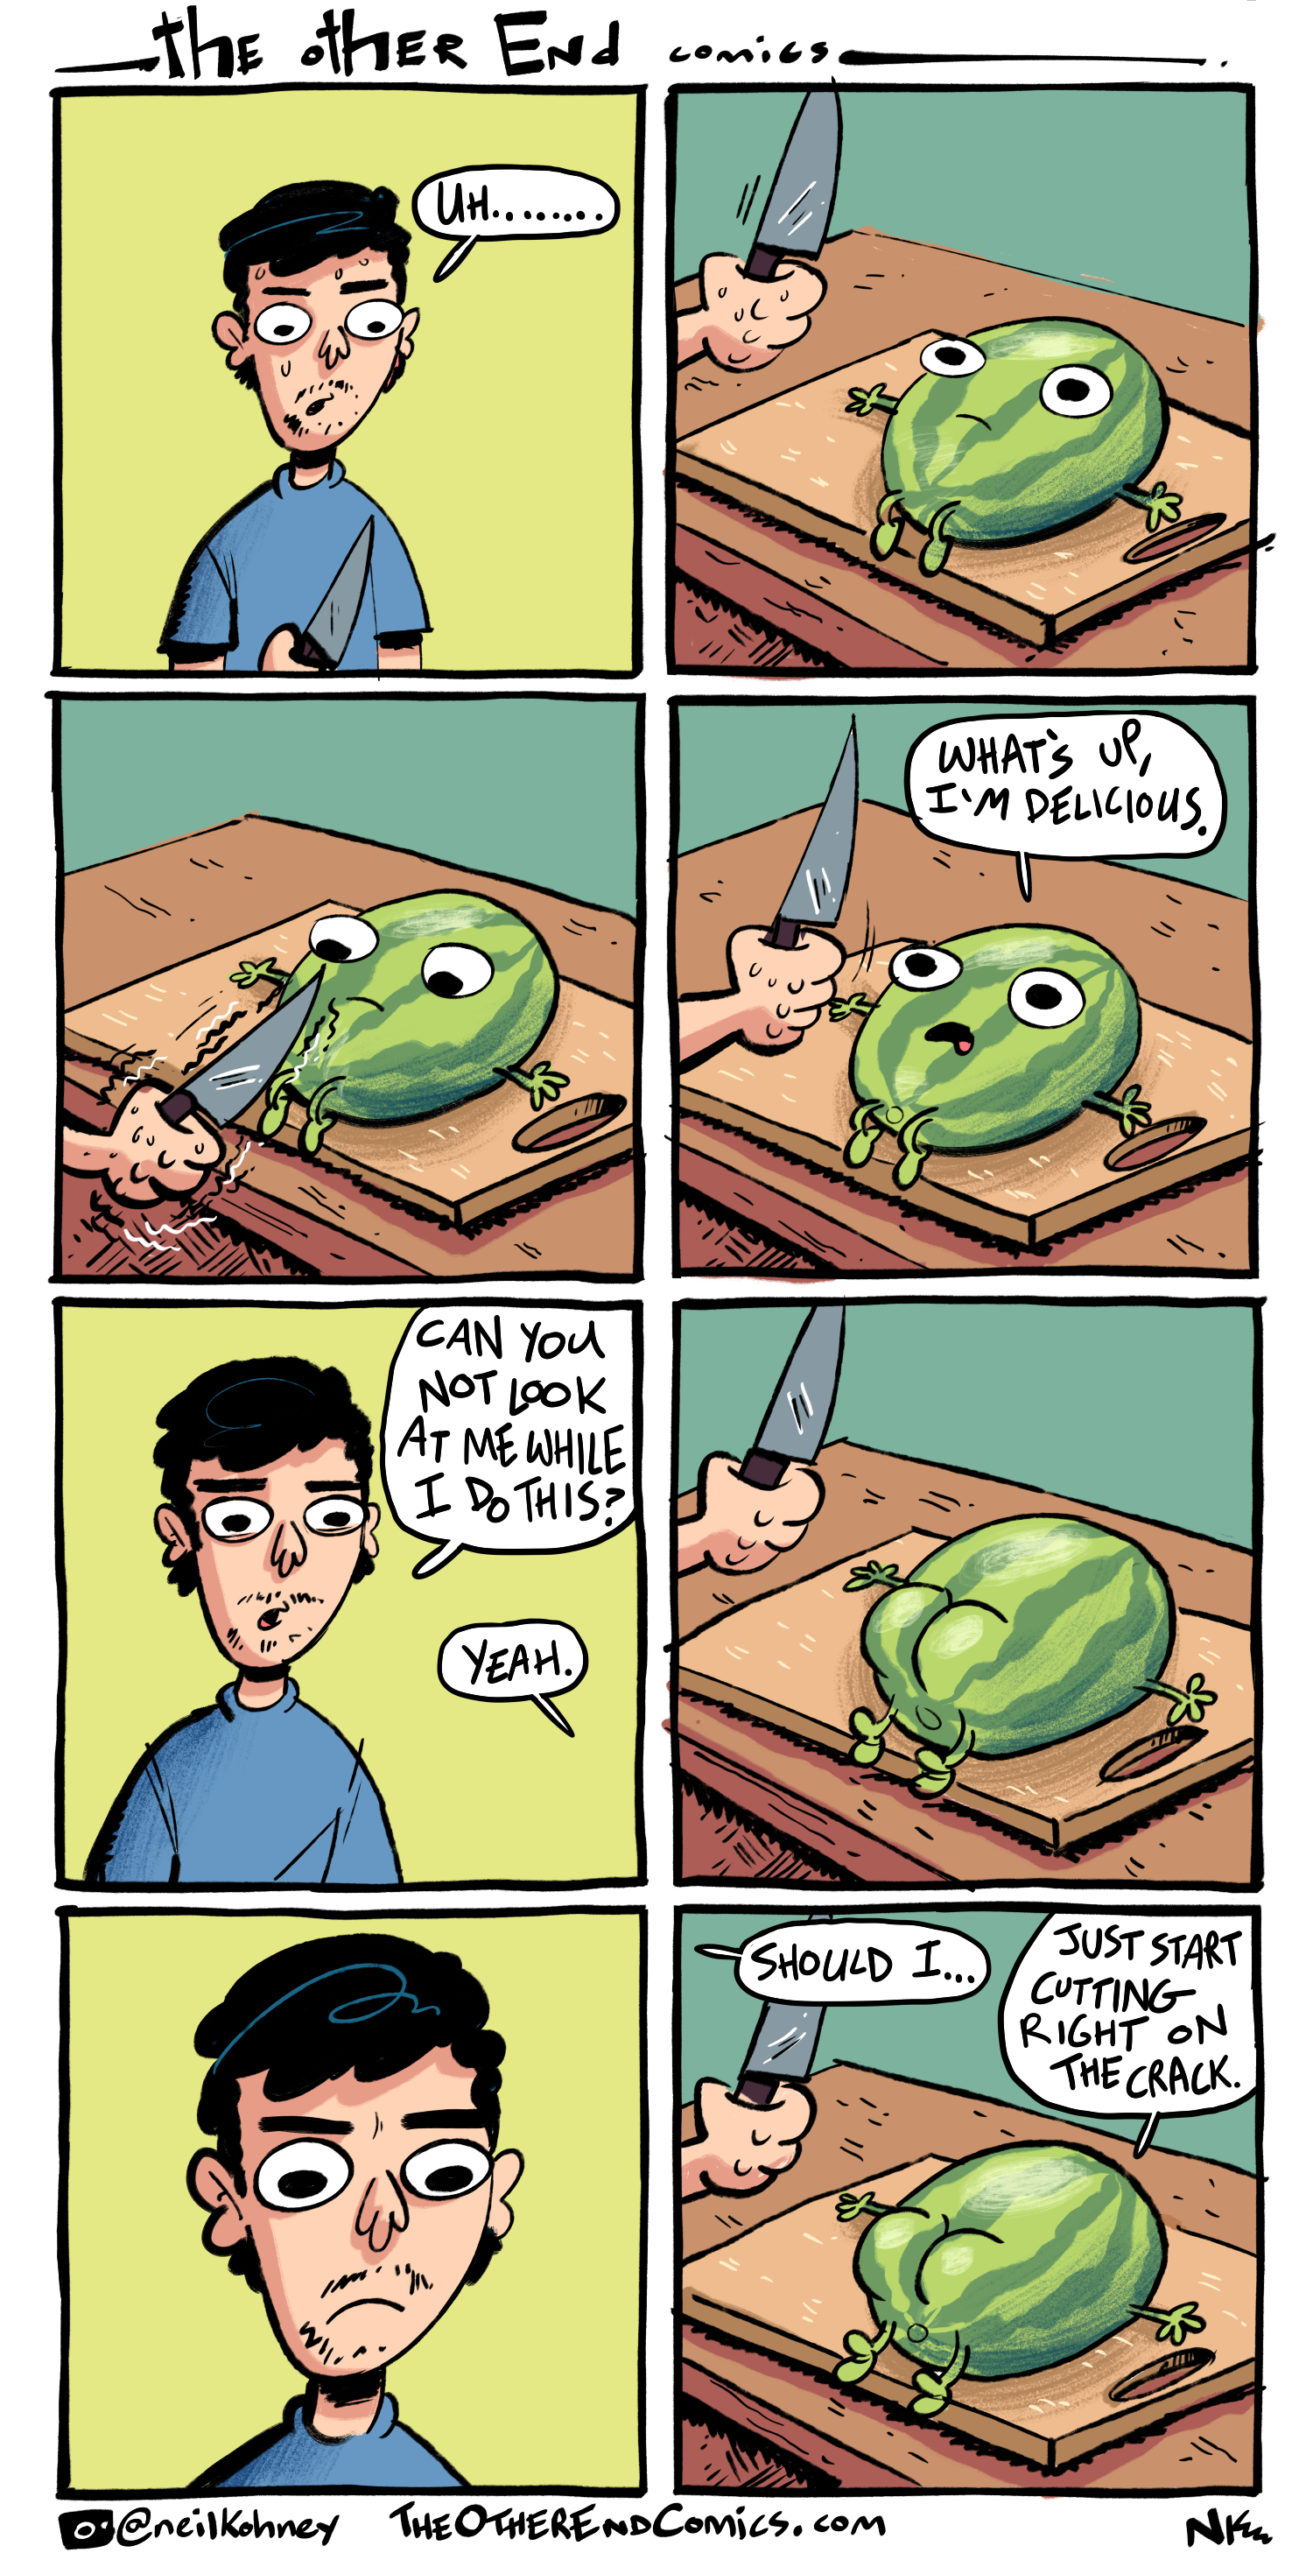 You're supposed to cut watermelon with a machete. This comic is so fake